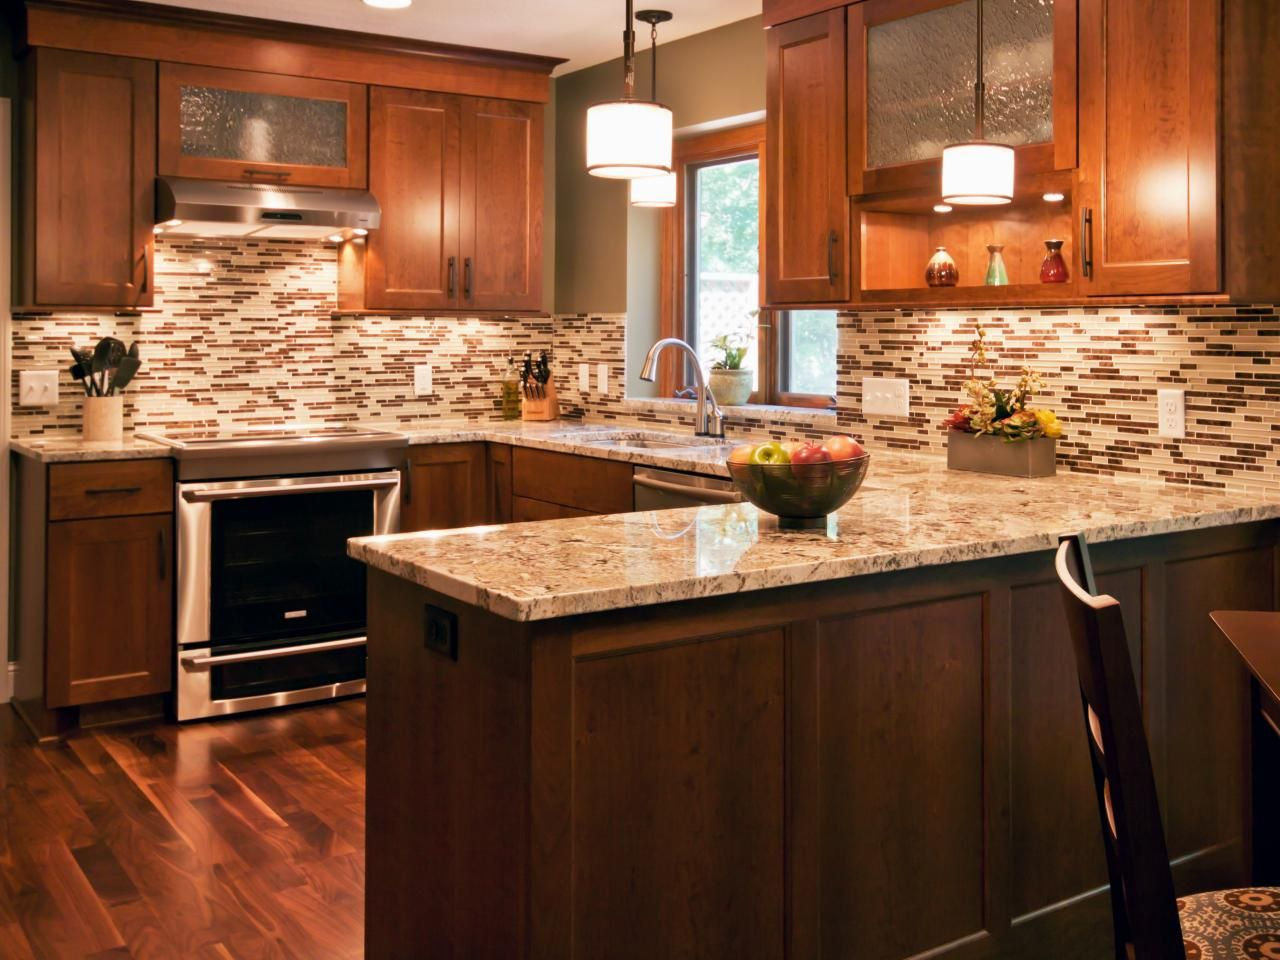 Wonderful Glass Tile Backsplash With Granite Countertops   Google Search